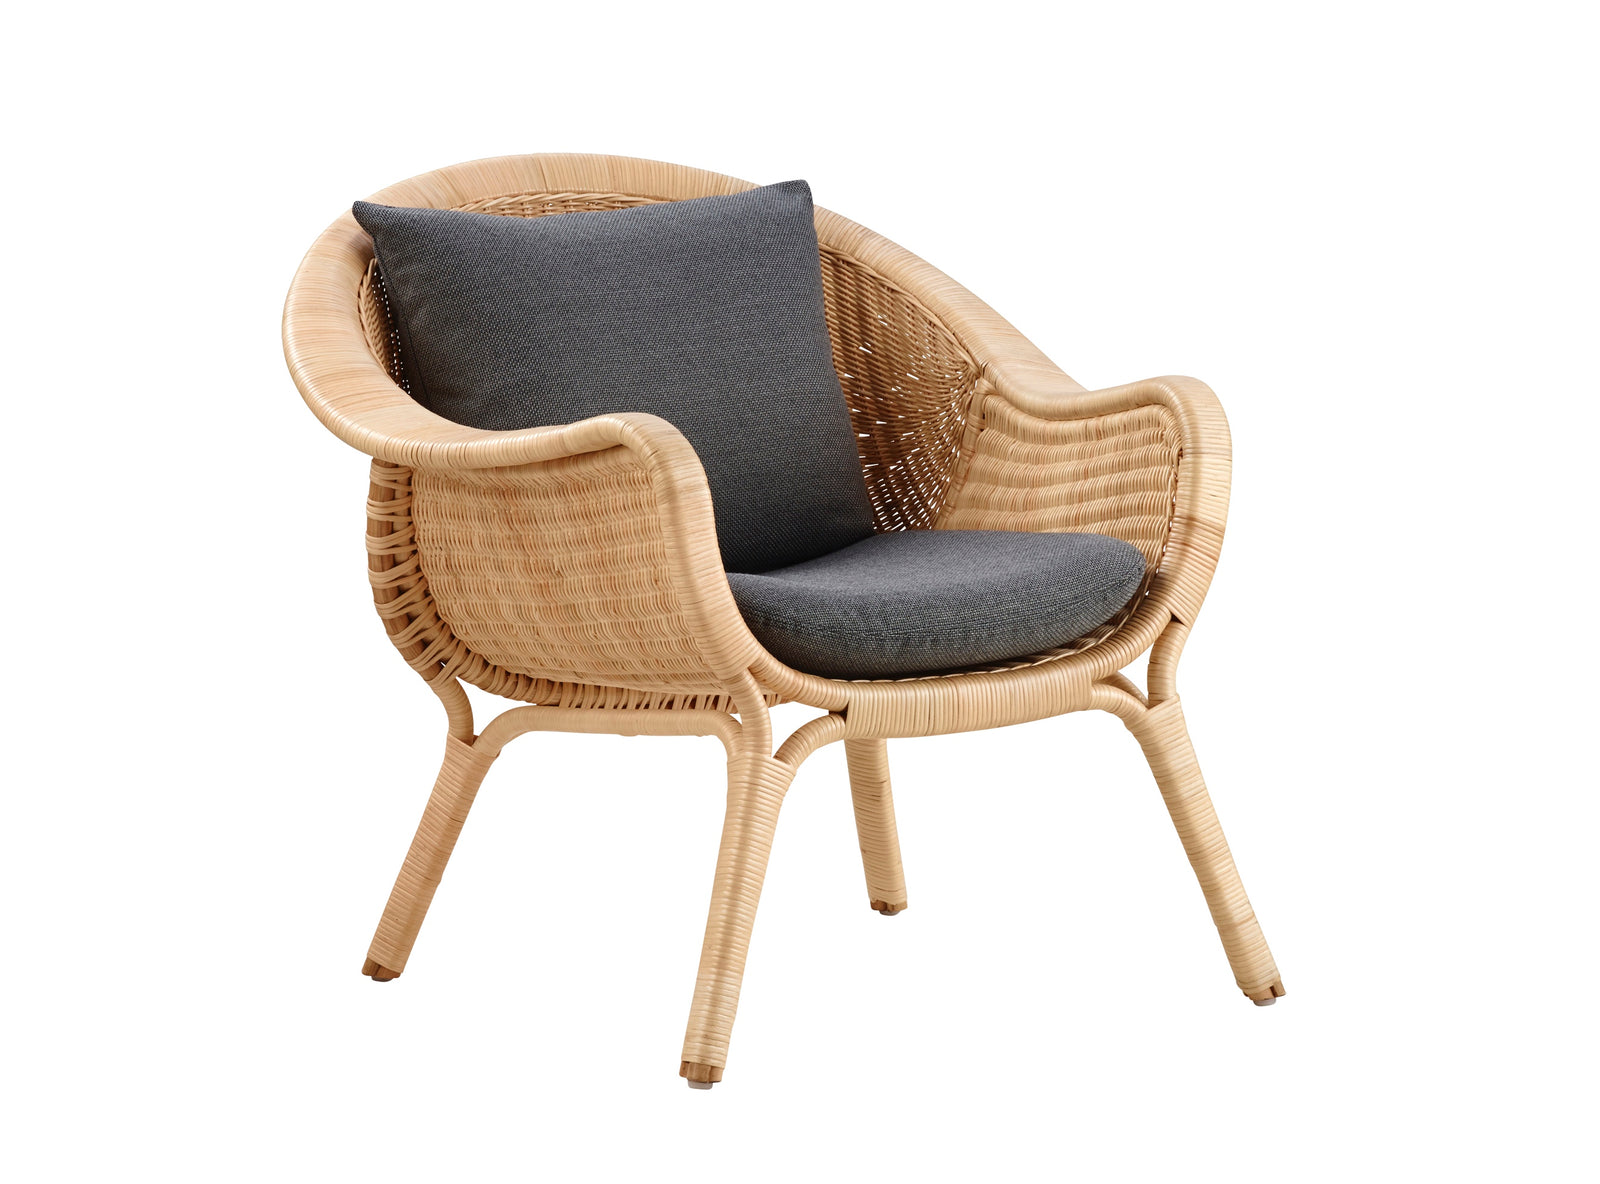 Subscription_OMNI_Nanna_Ditzel_The_Armchair_cushioned_Danish_design_furniture_office_comfortable_elegant_material_rattan